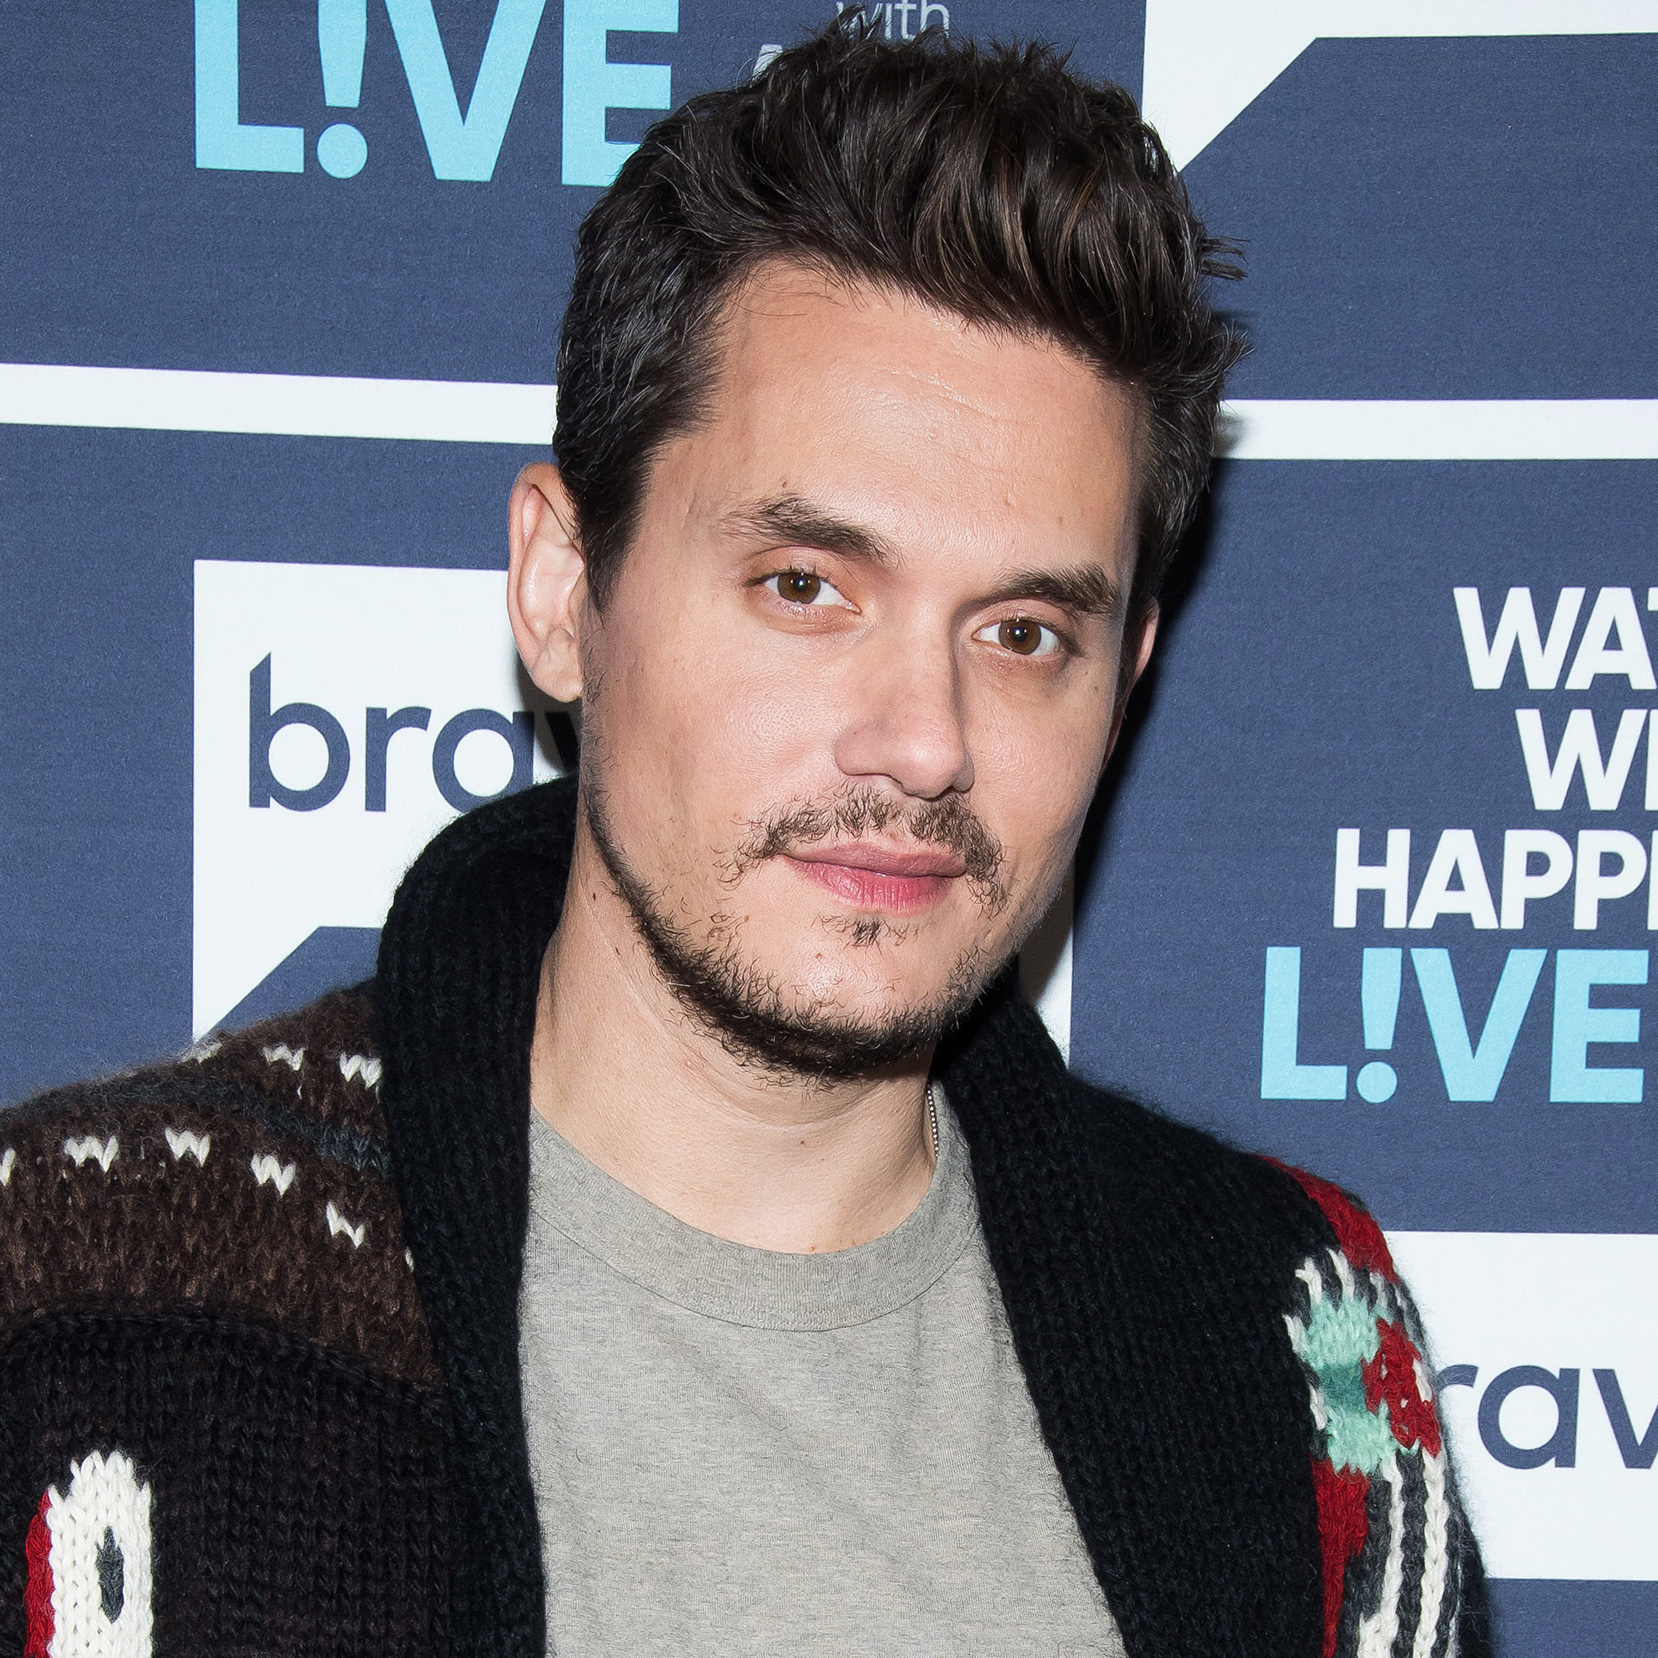 Celebs Who Revealed Health Issues in 2017 - John Mayer